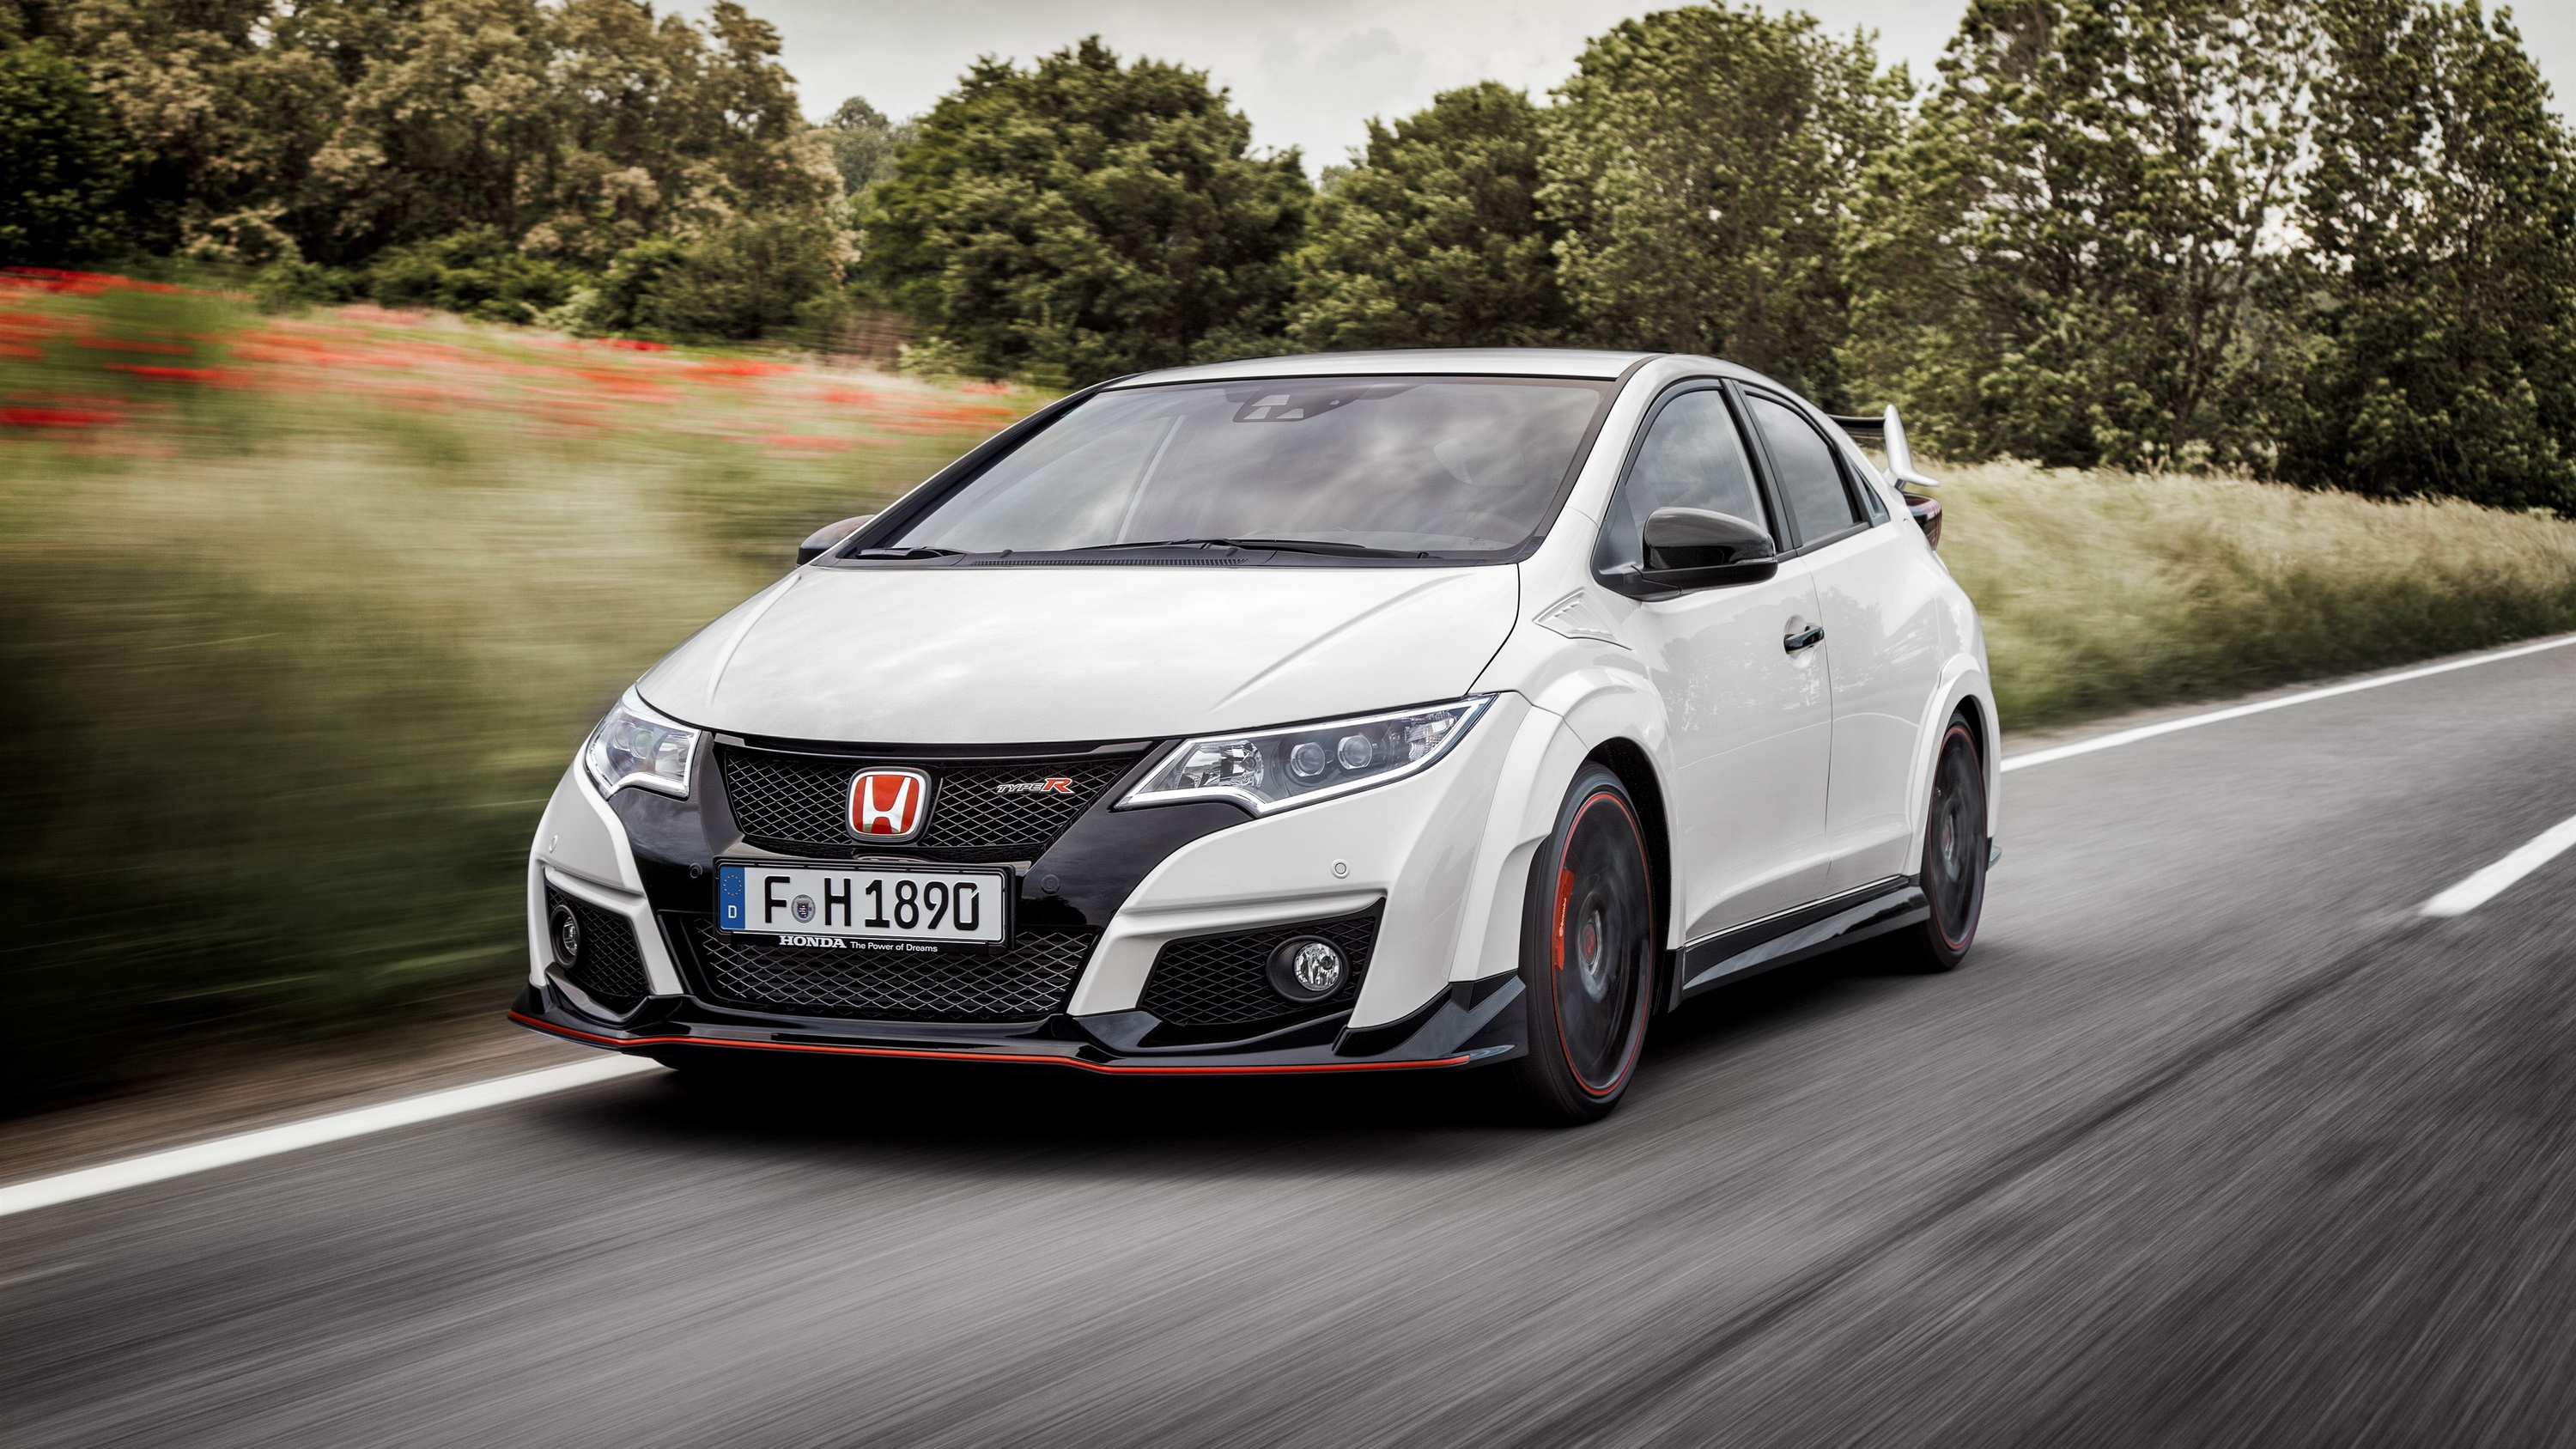 honda civic type r waiting list is growing by the day picture top speed. Black Bedroom Furniture Sets. Home Design Ideas